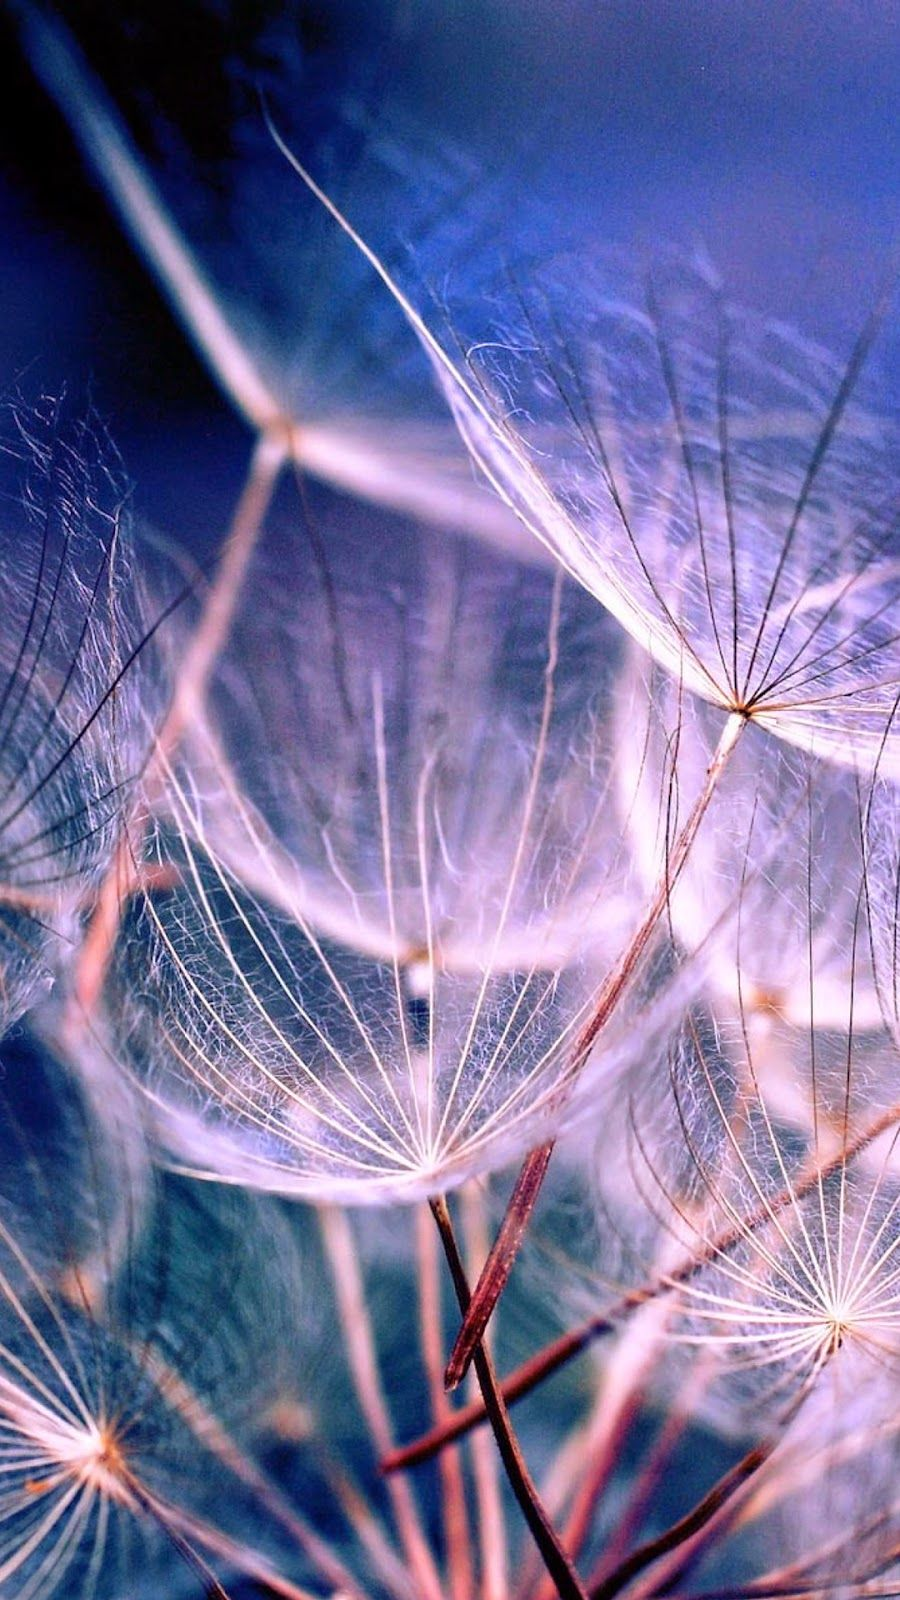 25 Hd Retina Wallpaper Collection Of Iphone 6 Plus Hdpixels Retina Wallpaper Dandelion Nature Wallpaper